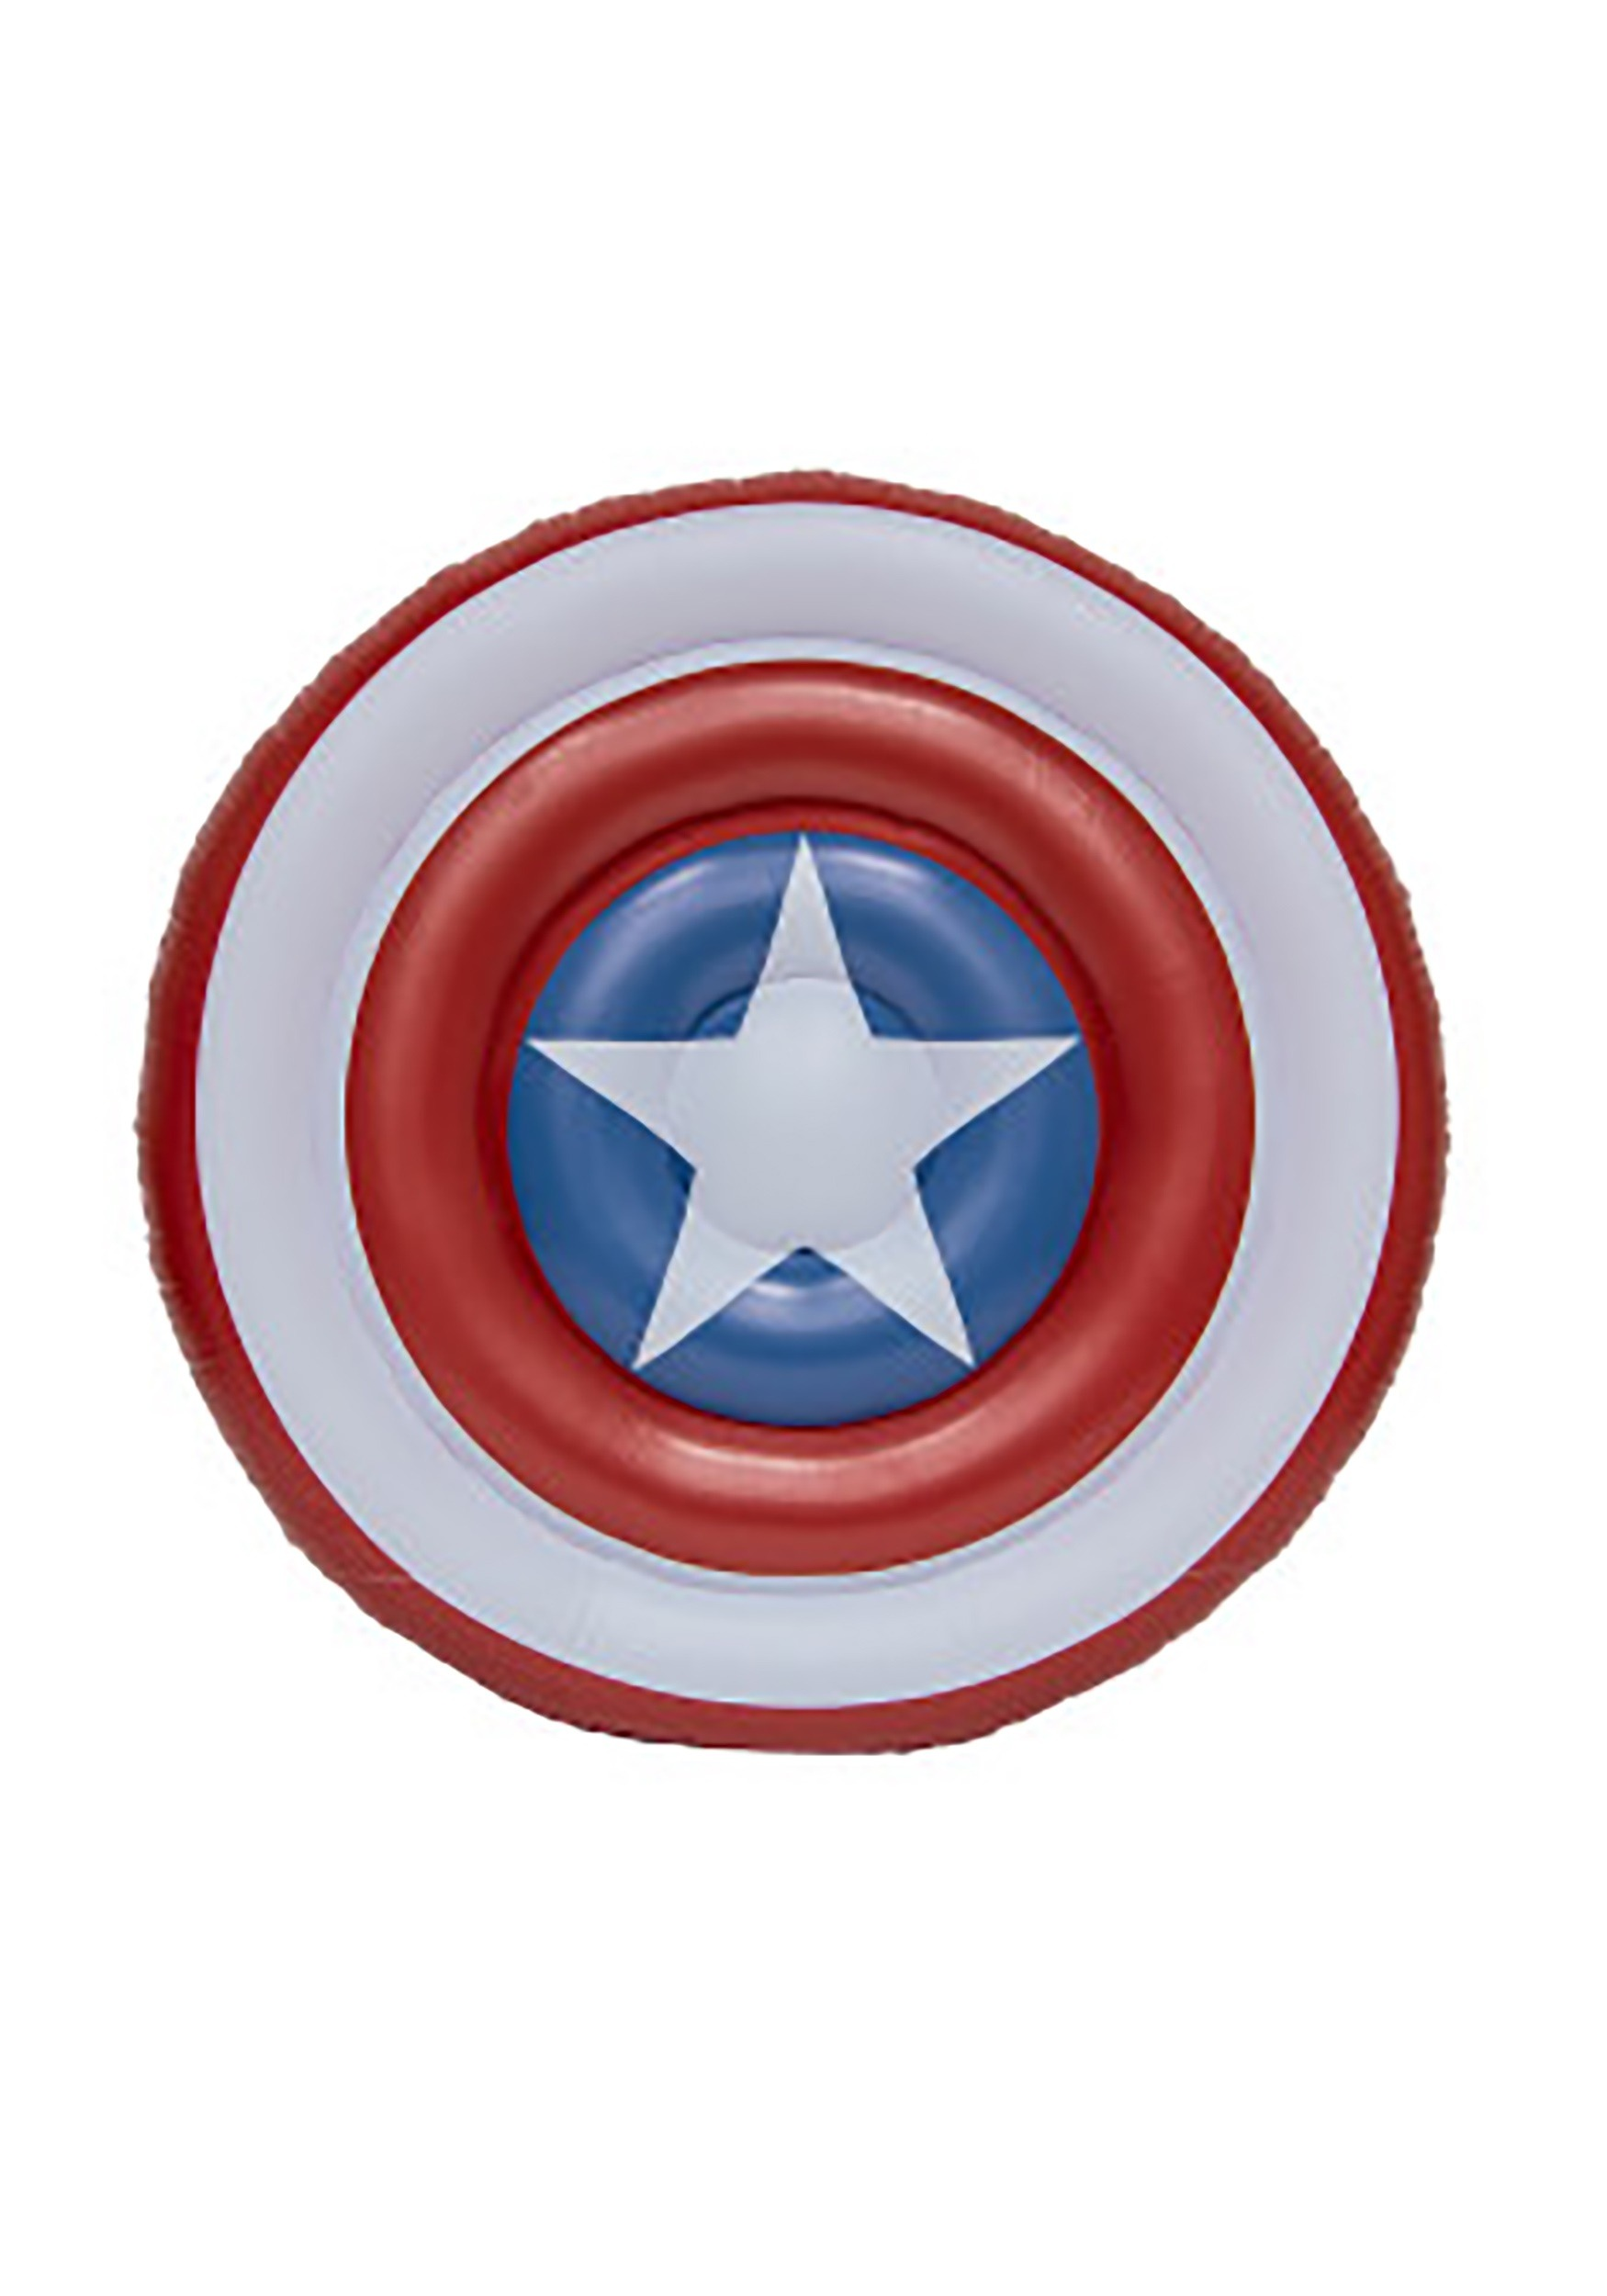 Captain America Shield Inflatable Pool Float From Marvel